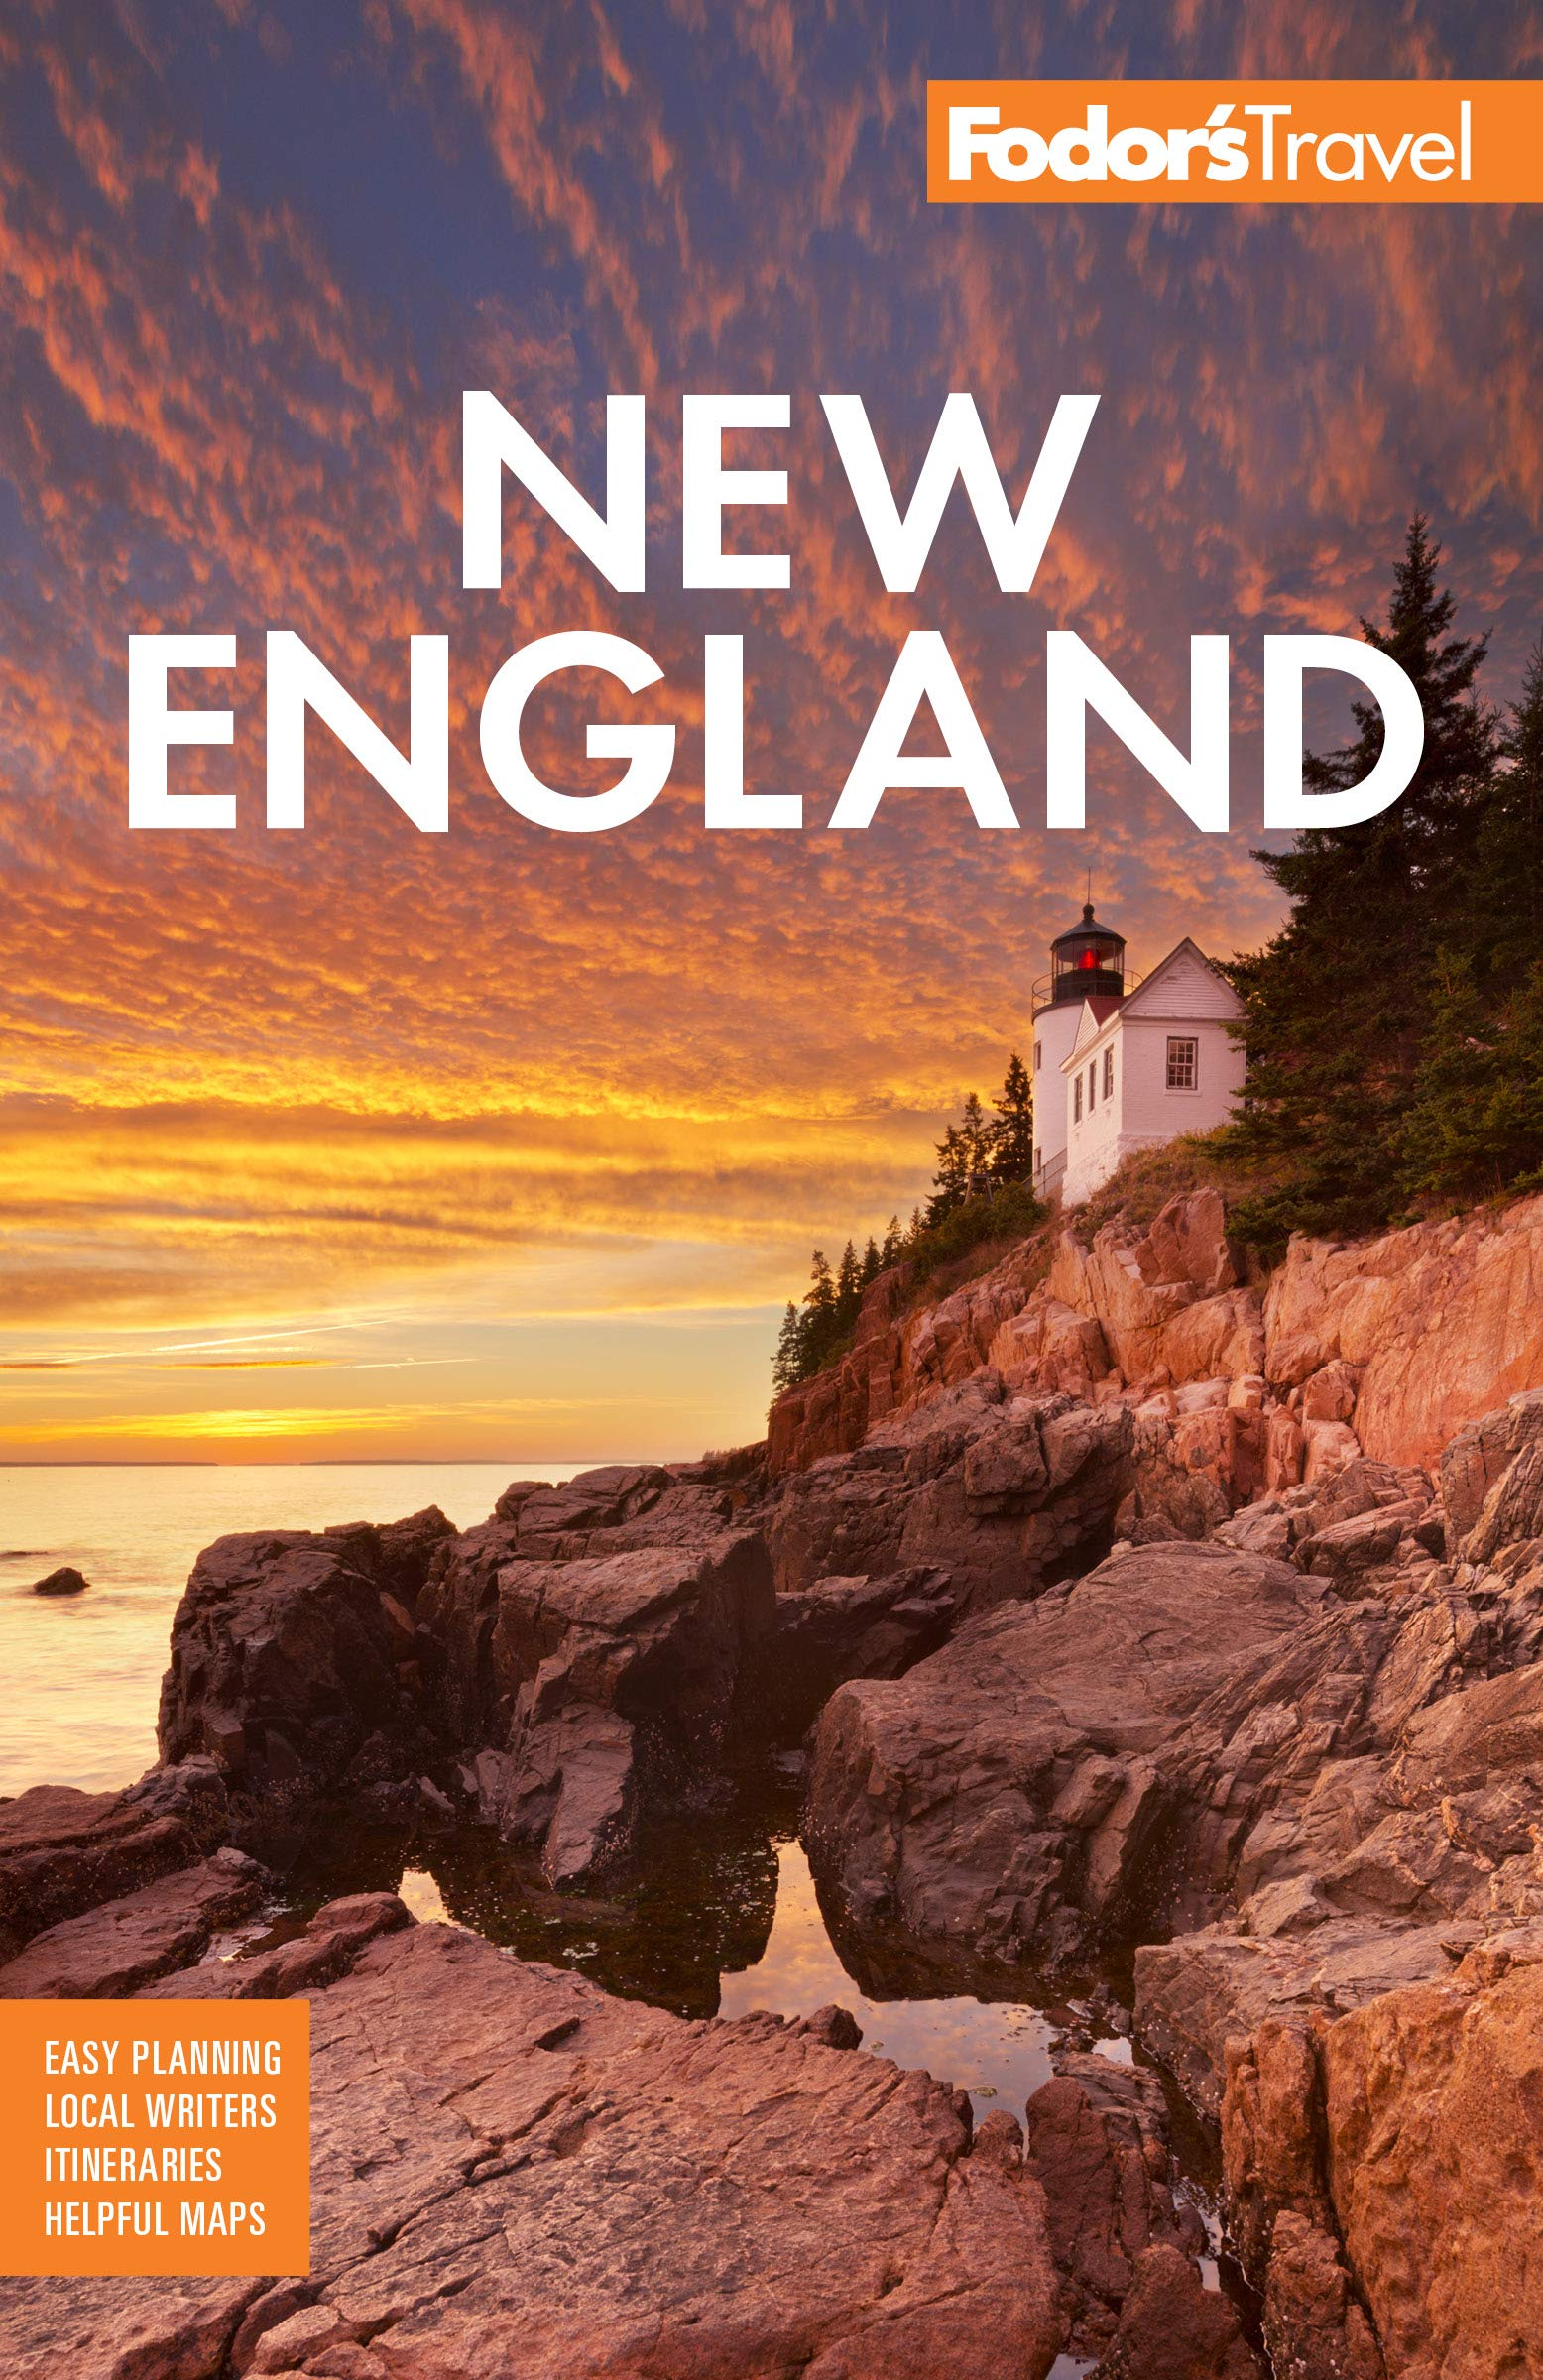 Fodor's New England : with the Best Fall Foliage Drives & Scenic Road Trips 9781640971240  Random House   Reisgidsen New England